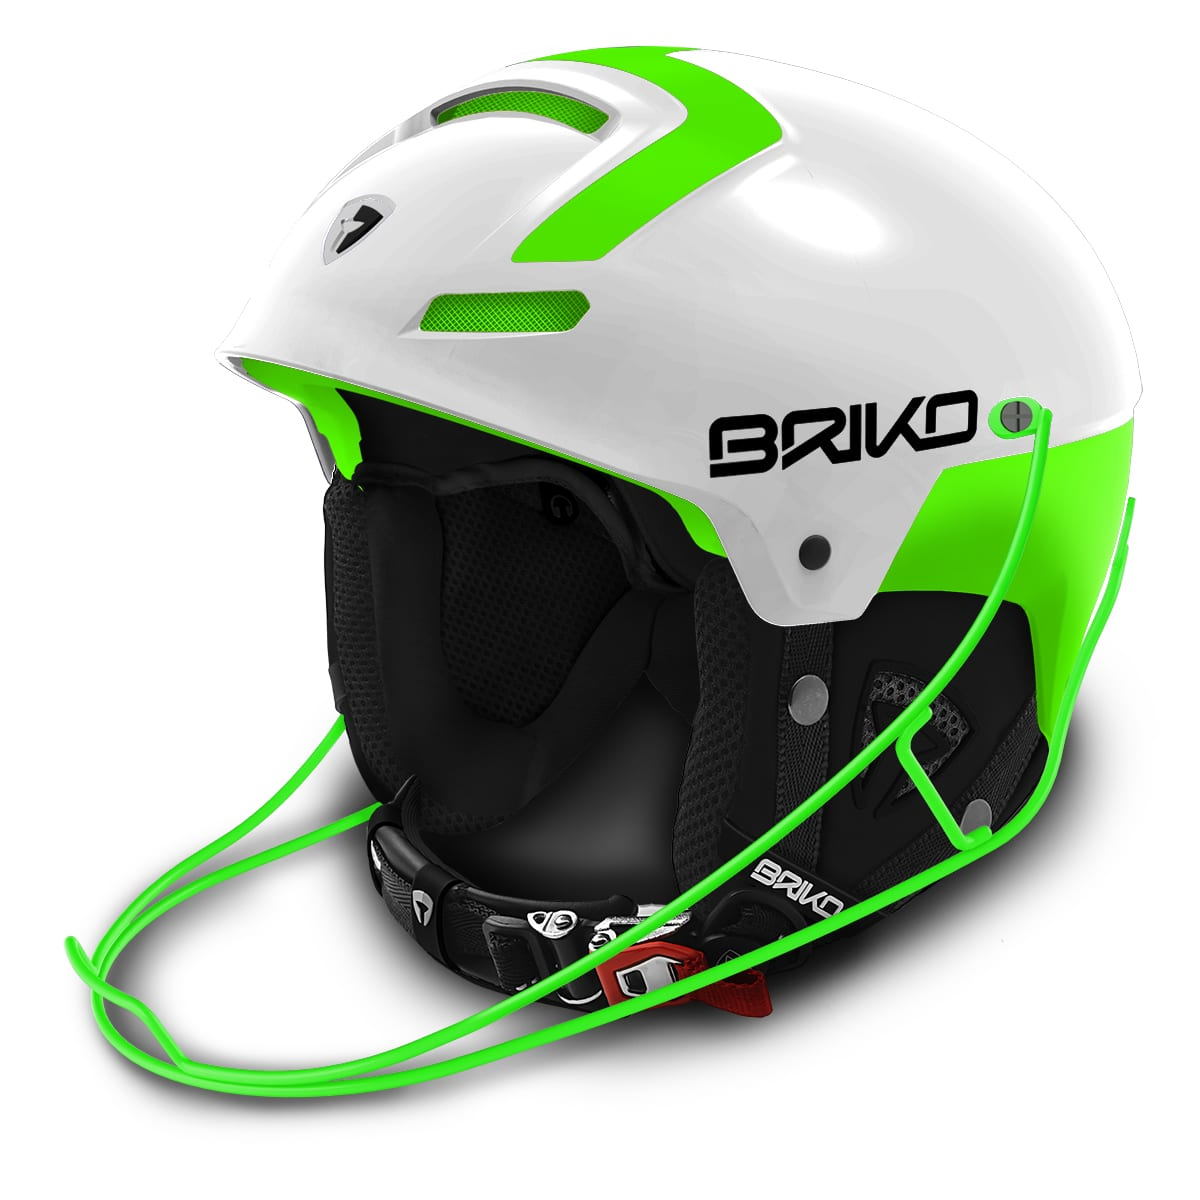 Briko Slalom Helmet with Chin Guard- White Green